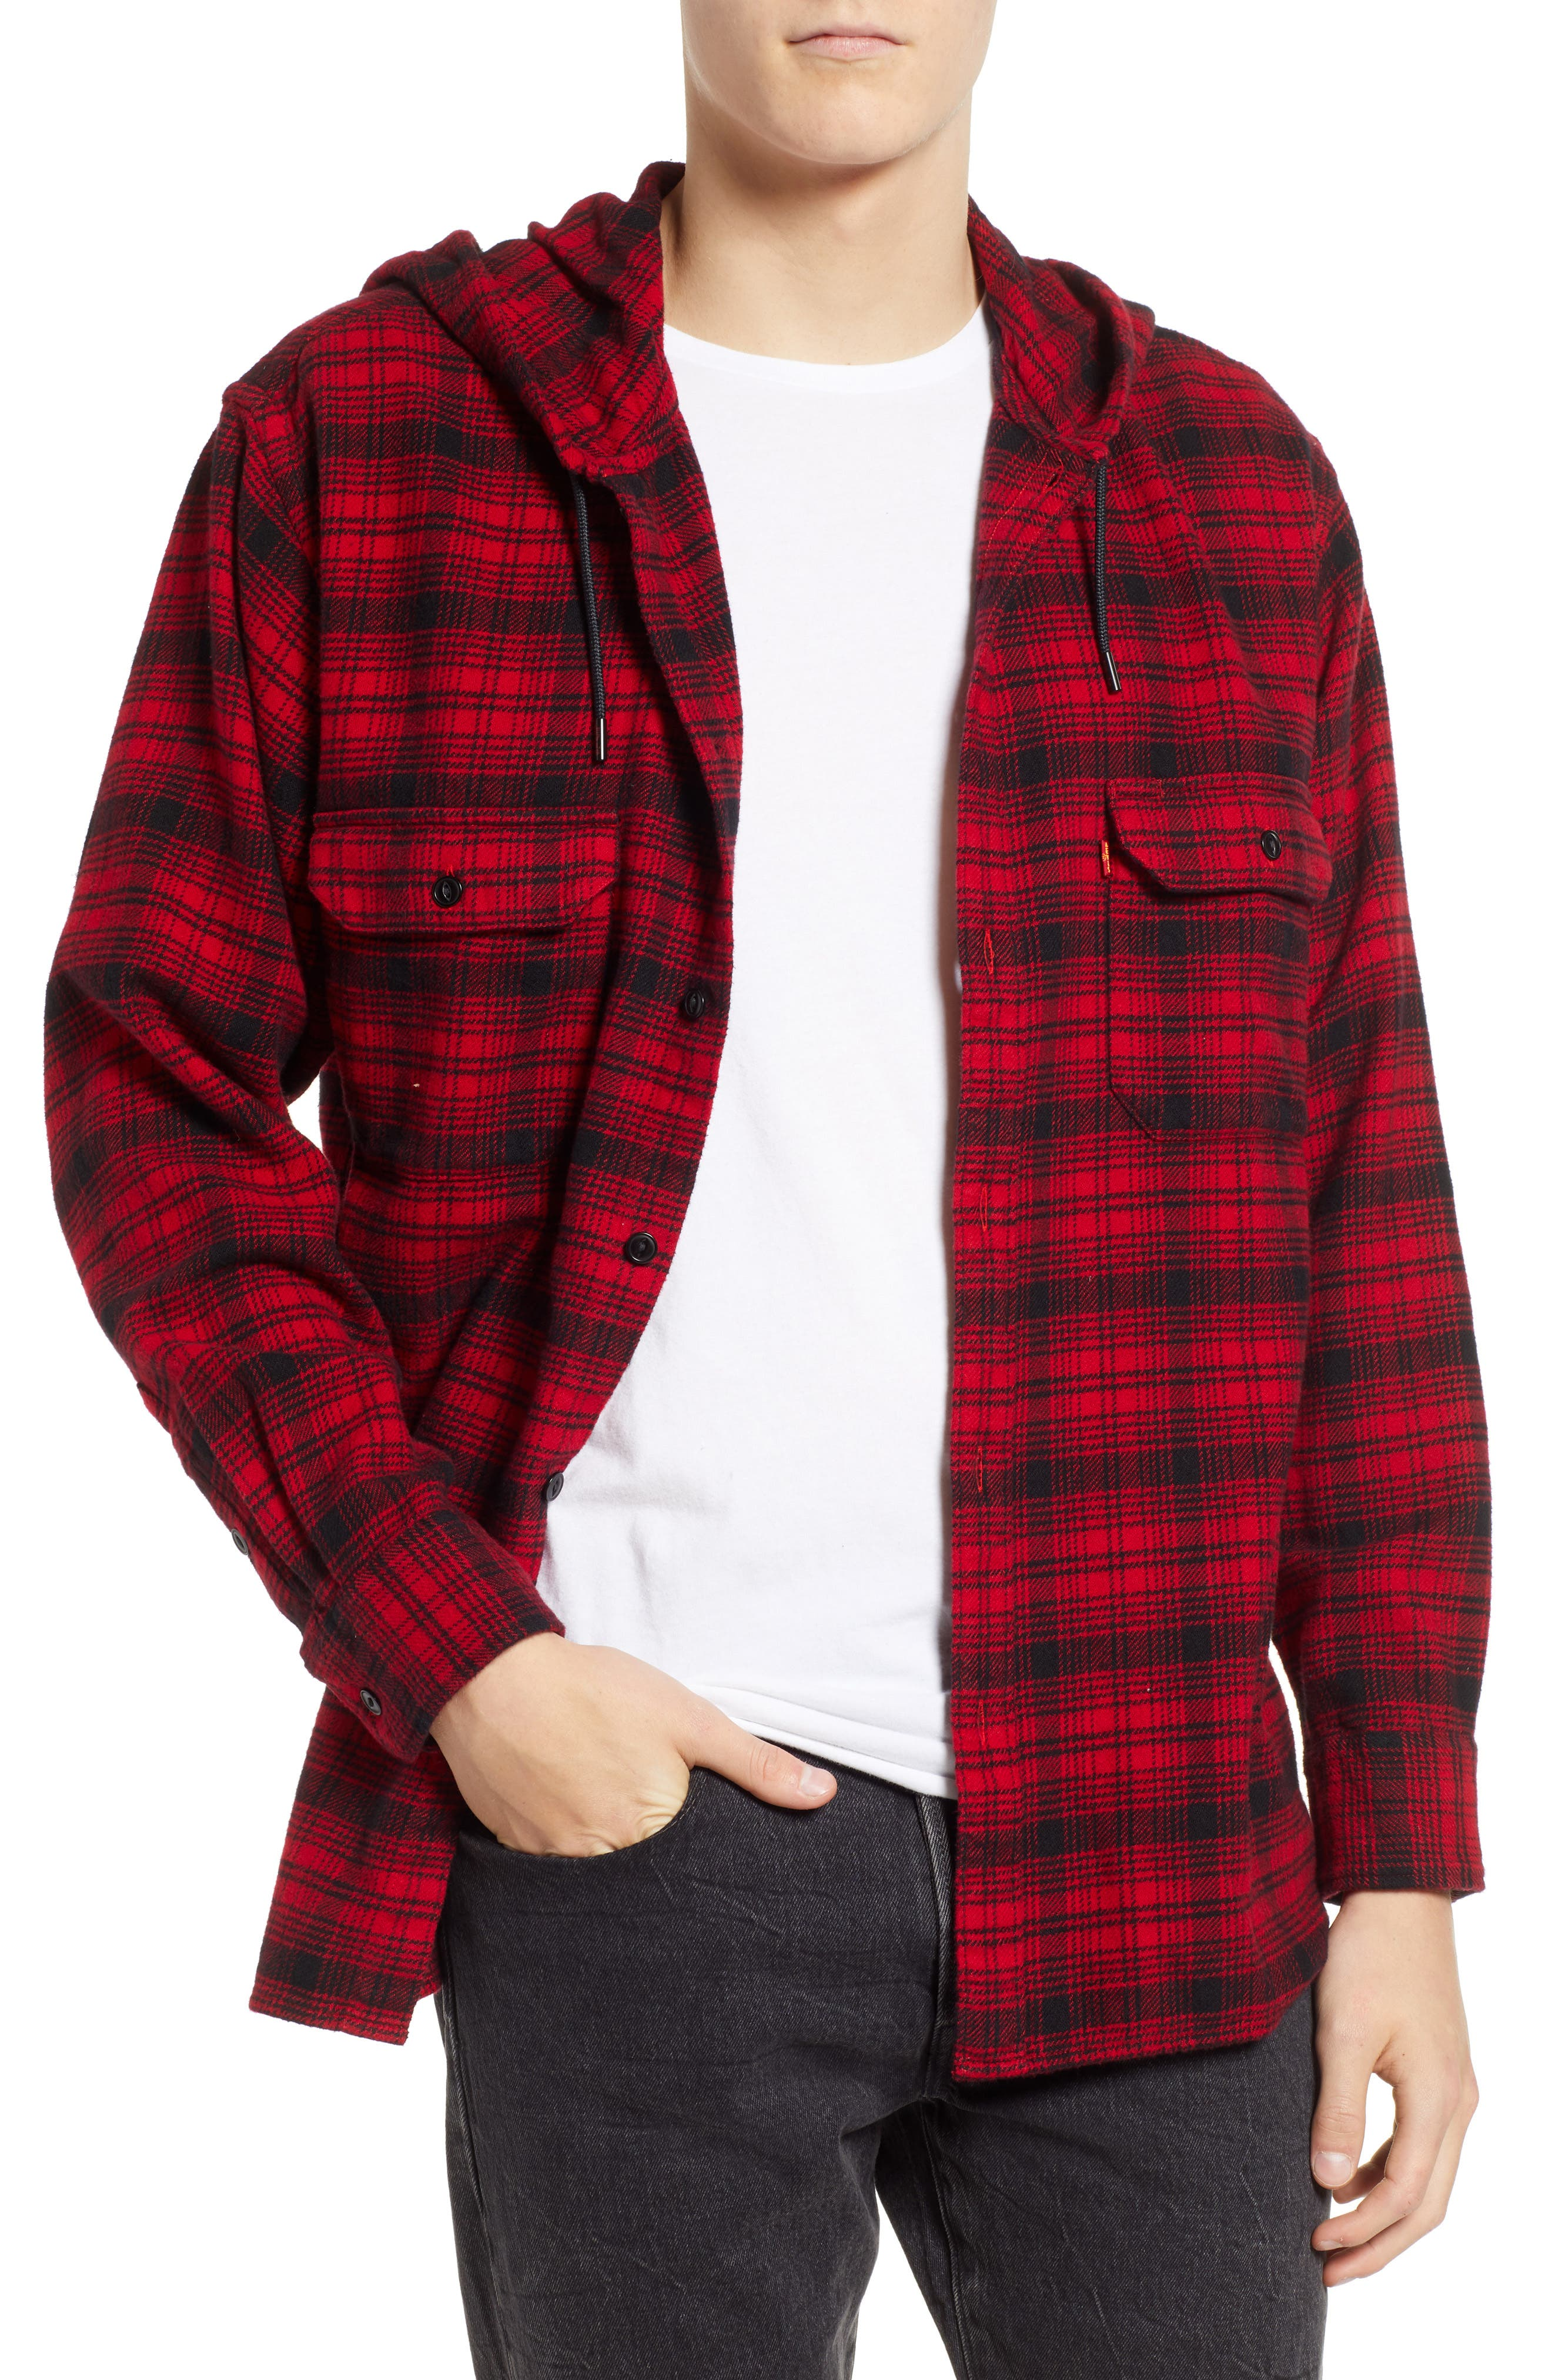 x Justin Timberlake Hooded Flannel Worker Shirt,                             Main thumbnail 1, color,                             SERVAL CRIMSON